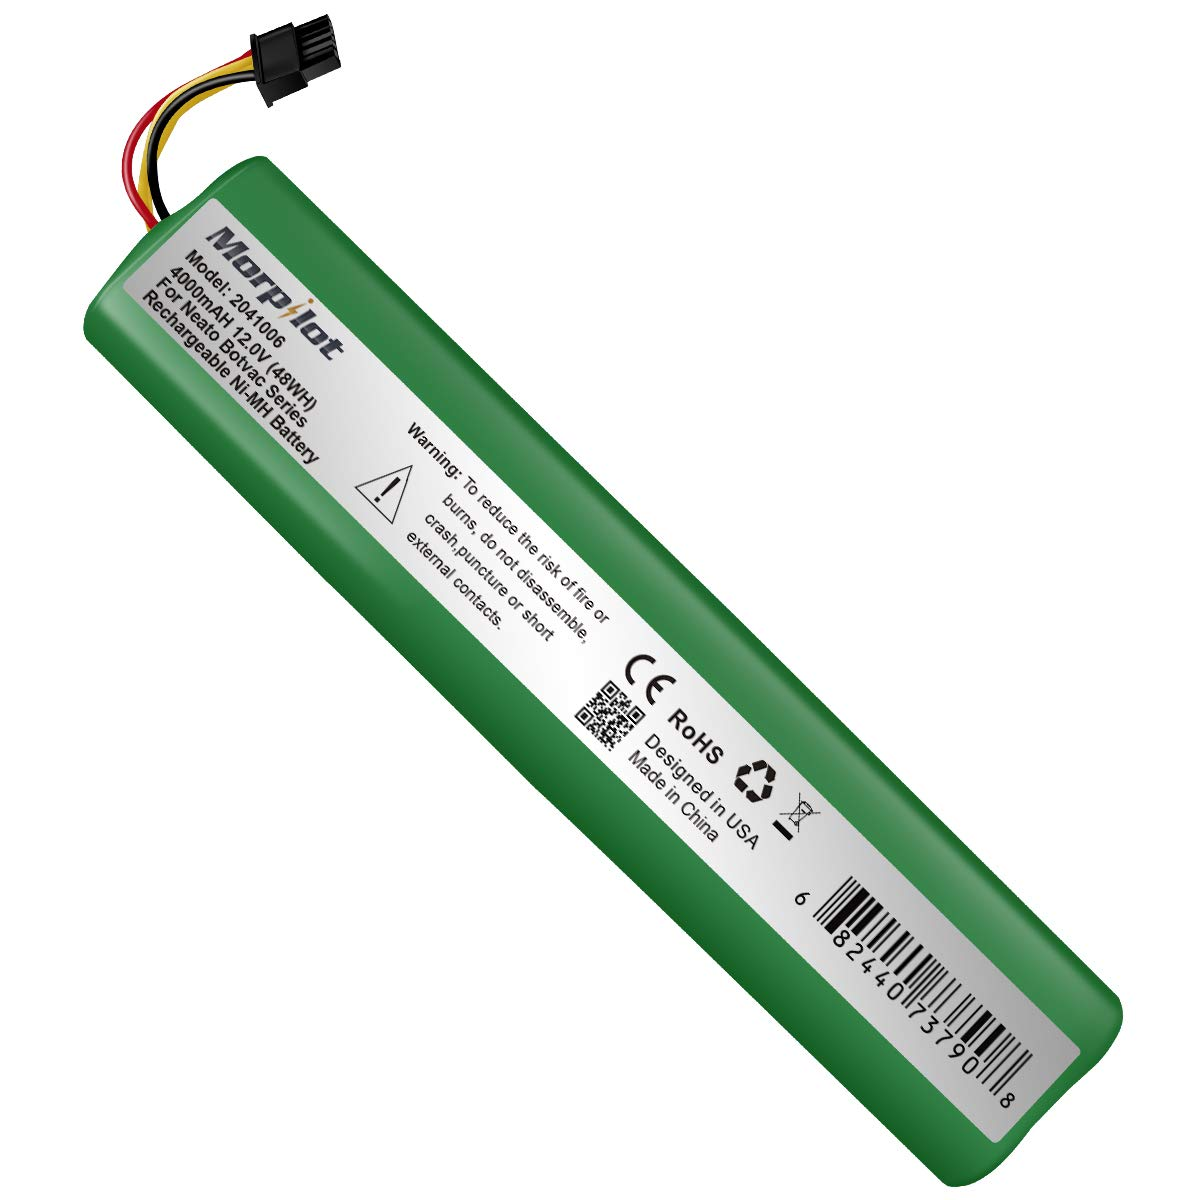 Morpilot 12V 4000mAh Extended NiMh Battery for Neato Botvac Series 70e, 75, 80, 85 Robotic Vacuum 945-0129 945-0174(Not compatible with Neato D3 D5 D7) by Morpilot